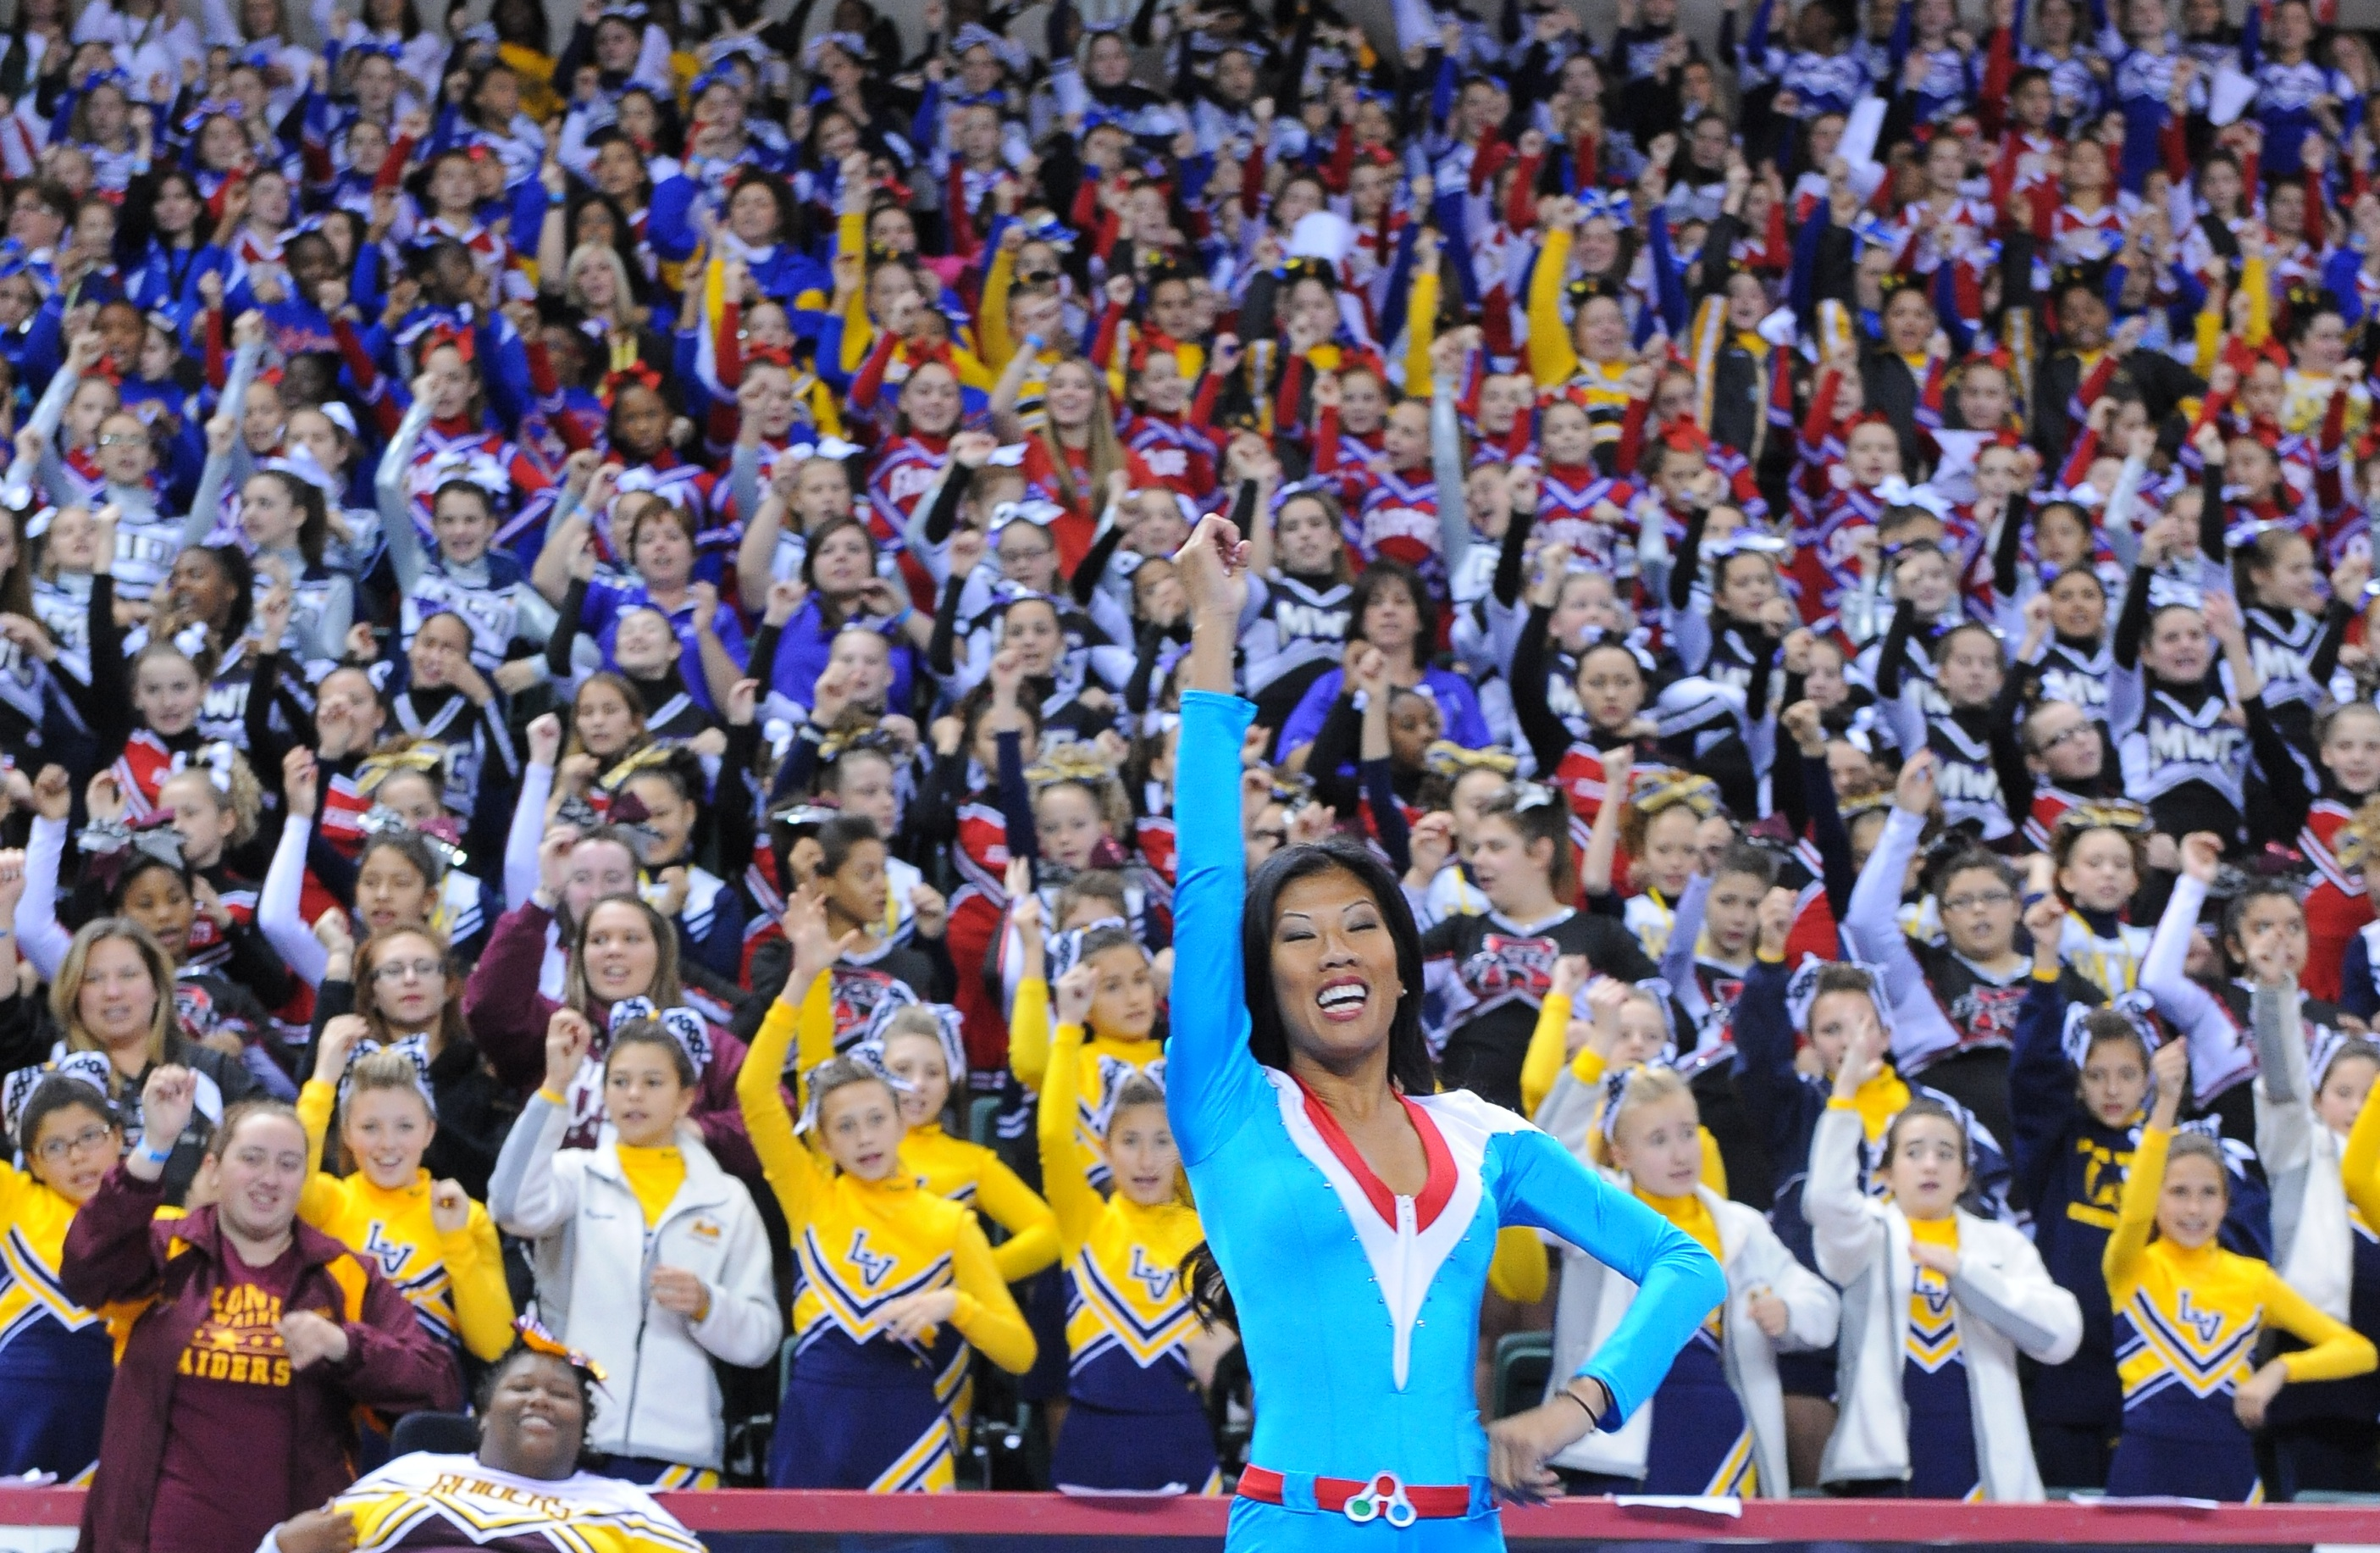 Meet dozens of NFL and NBA cheerleaders pursuing science careers at the USA Science and Engineering Festival.